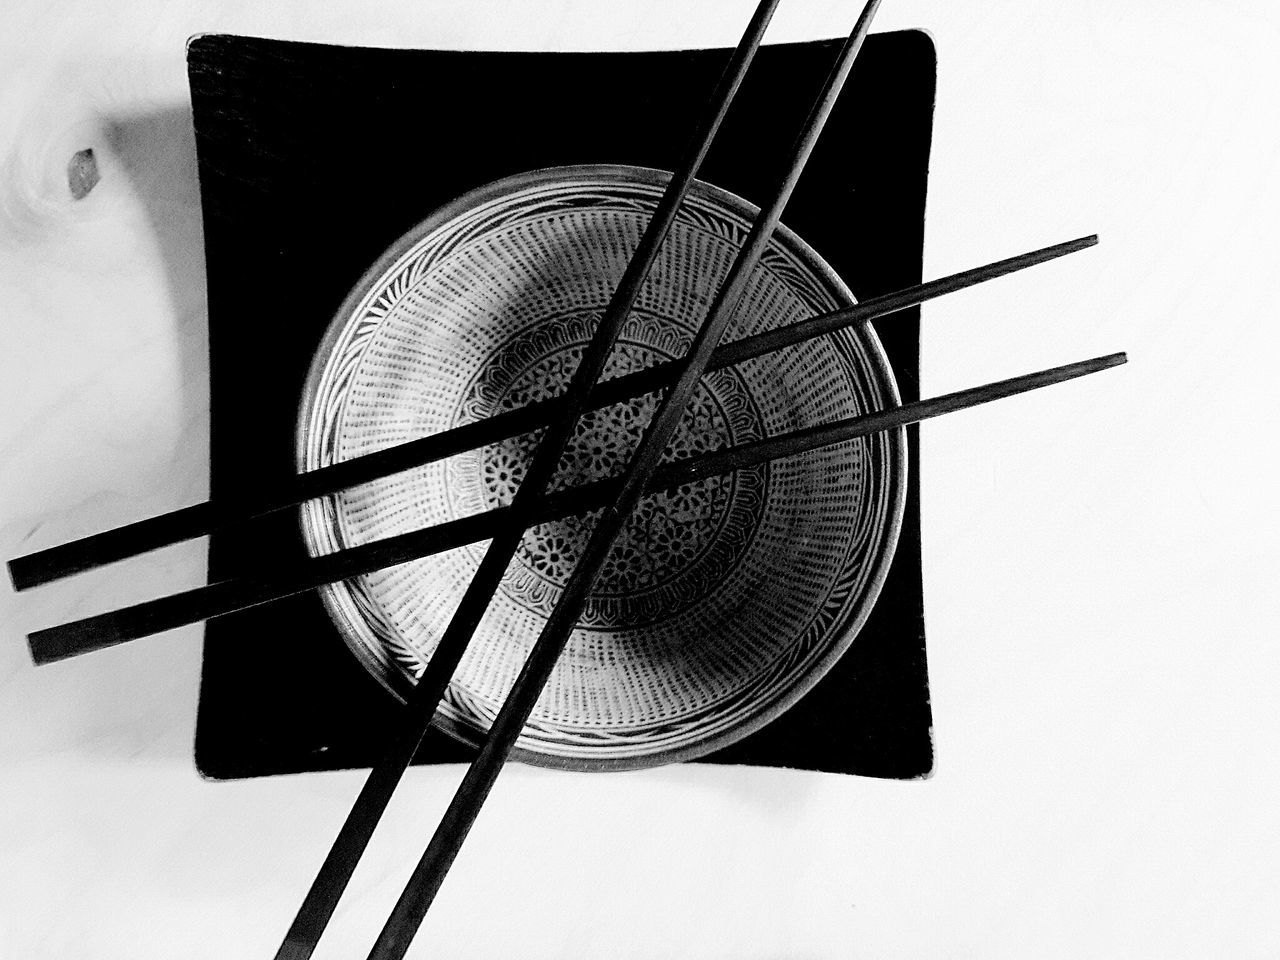 Directly Above No People Close-up White Background Day Indoors  Blackandwhite Asianstyle Foodphotography